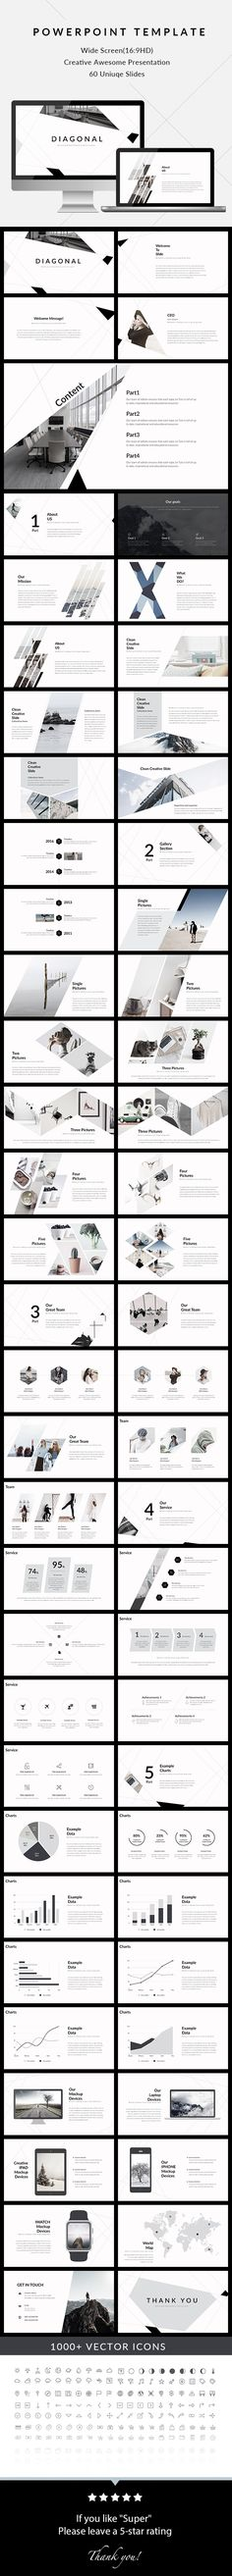 Diagonal - Clean & Creative PowerPoint Presentation  #marketing #pptx template • Download ➝ https://graphicriver.net/item/diagonal-clean-creative-powerpoint-presentation/18038771?ref=pxcr                                                                                                                                                                                 Mais